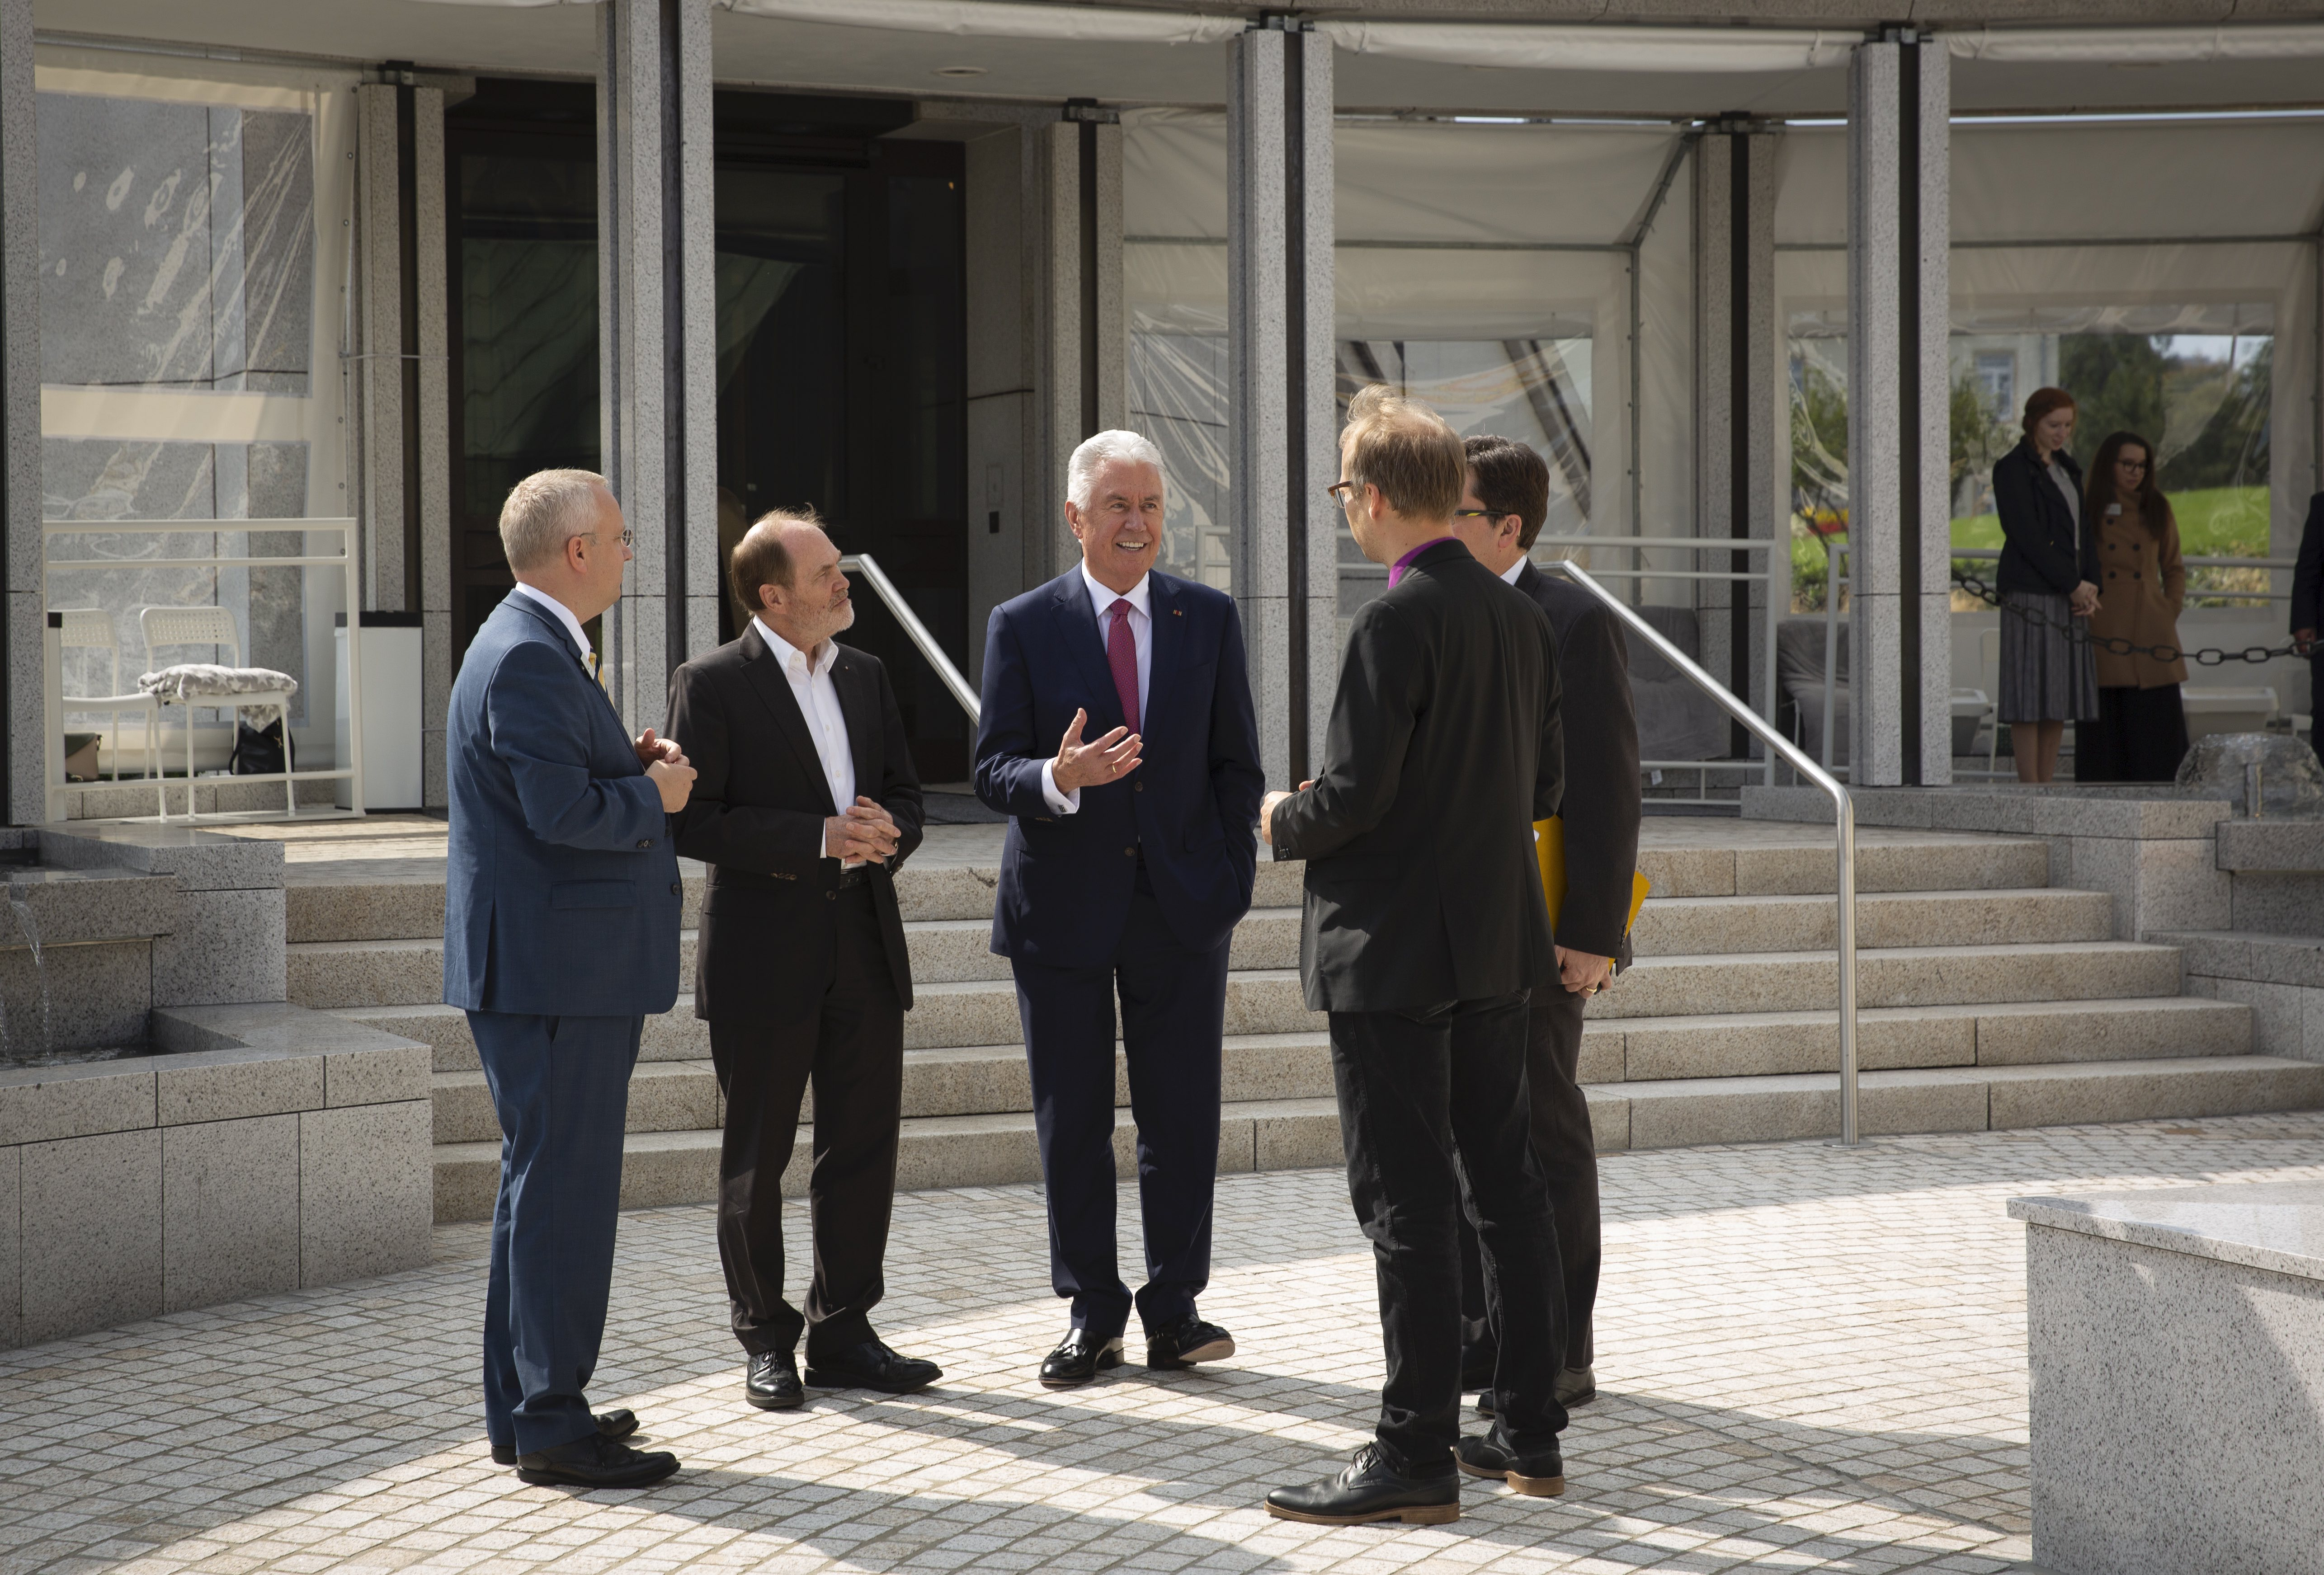 Elder Dieter F. Uchtdorf speaks with journalists outside the Frankfurt Temple in Friedrichsdorf, Germany, on Tuesday, Sept. 10, 2019.